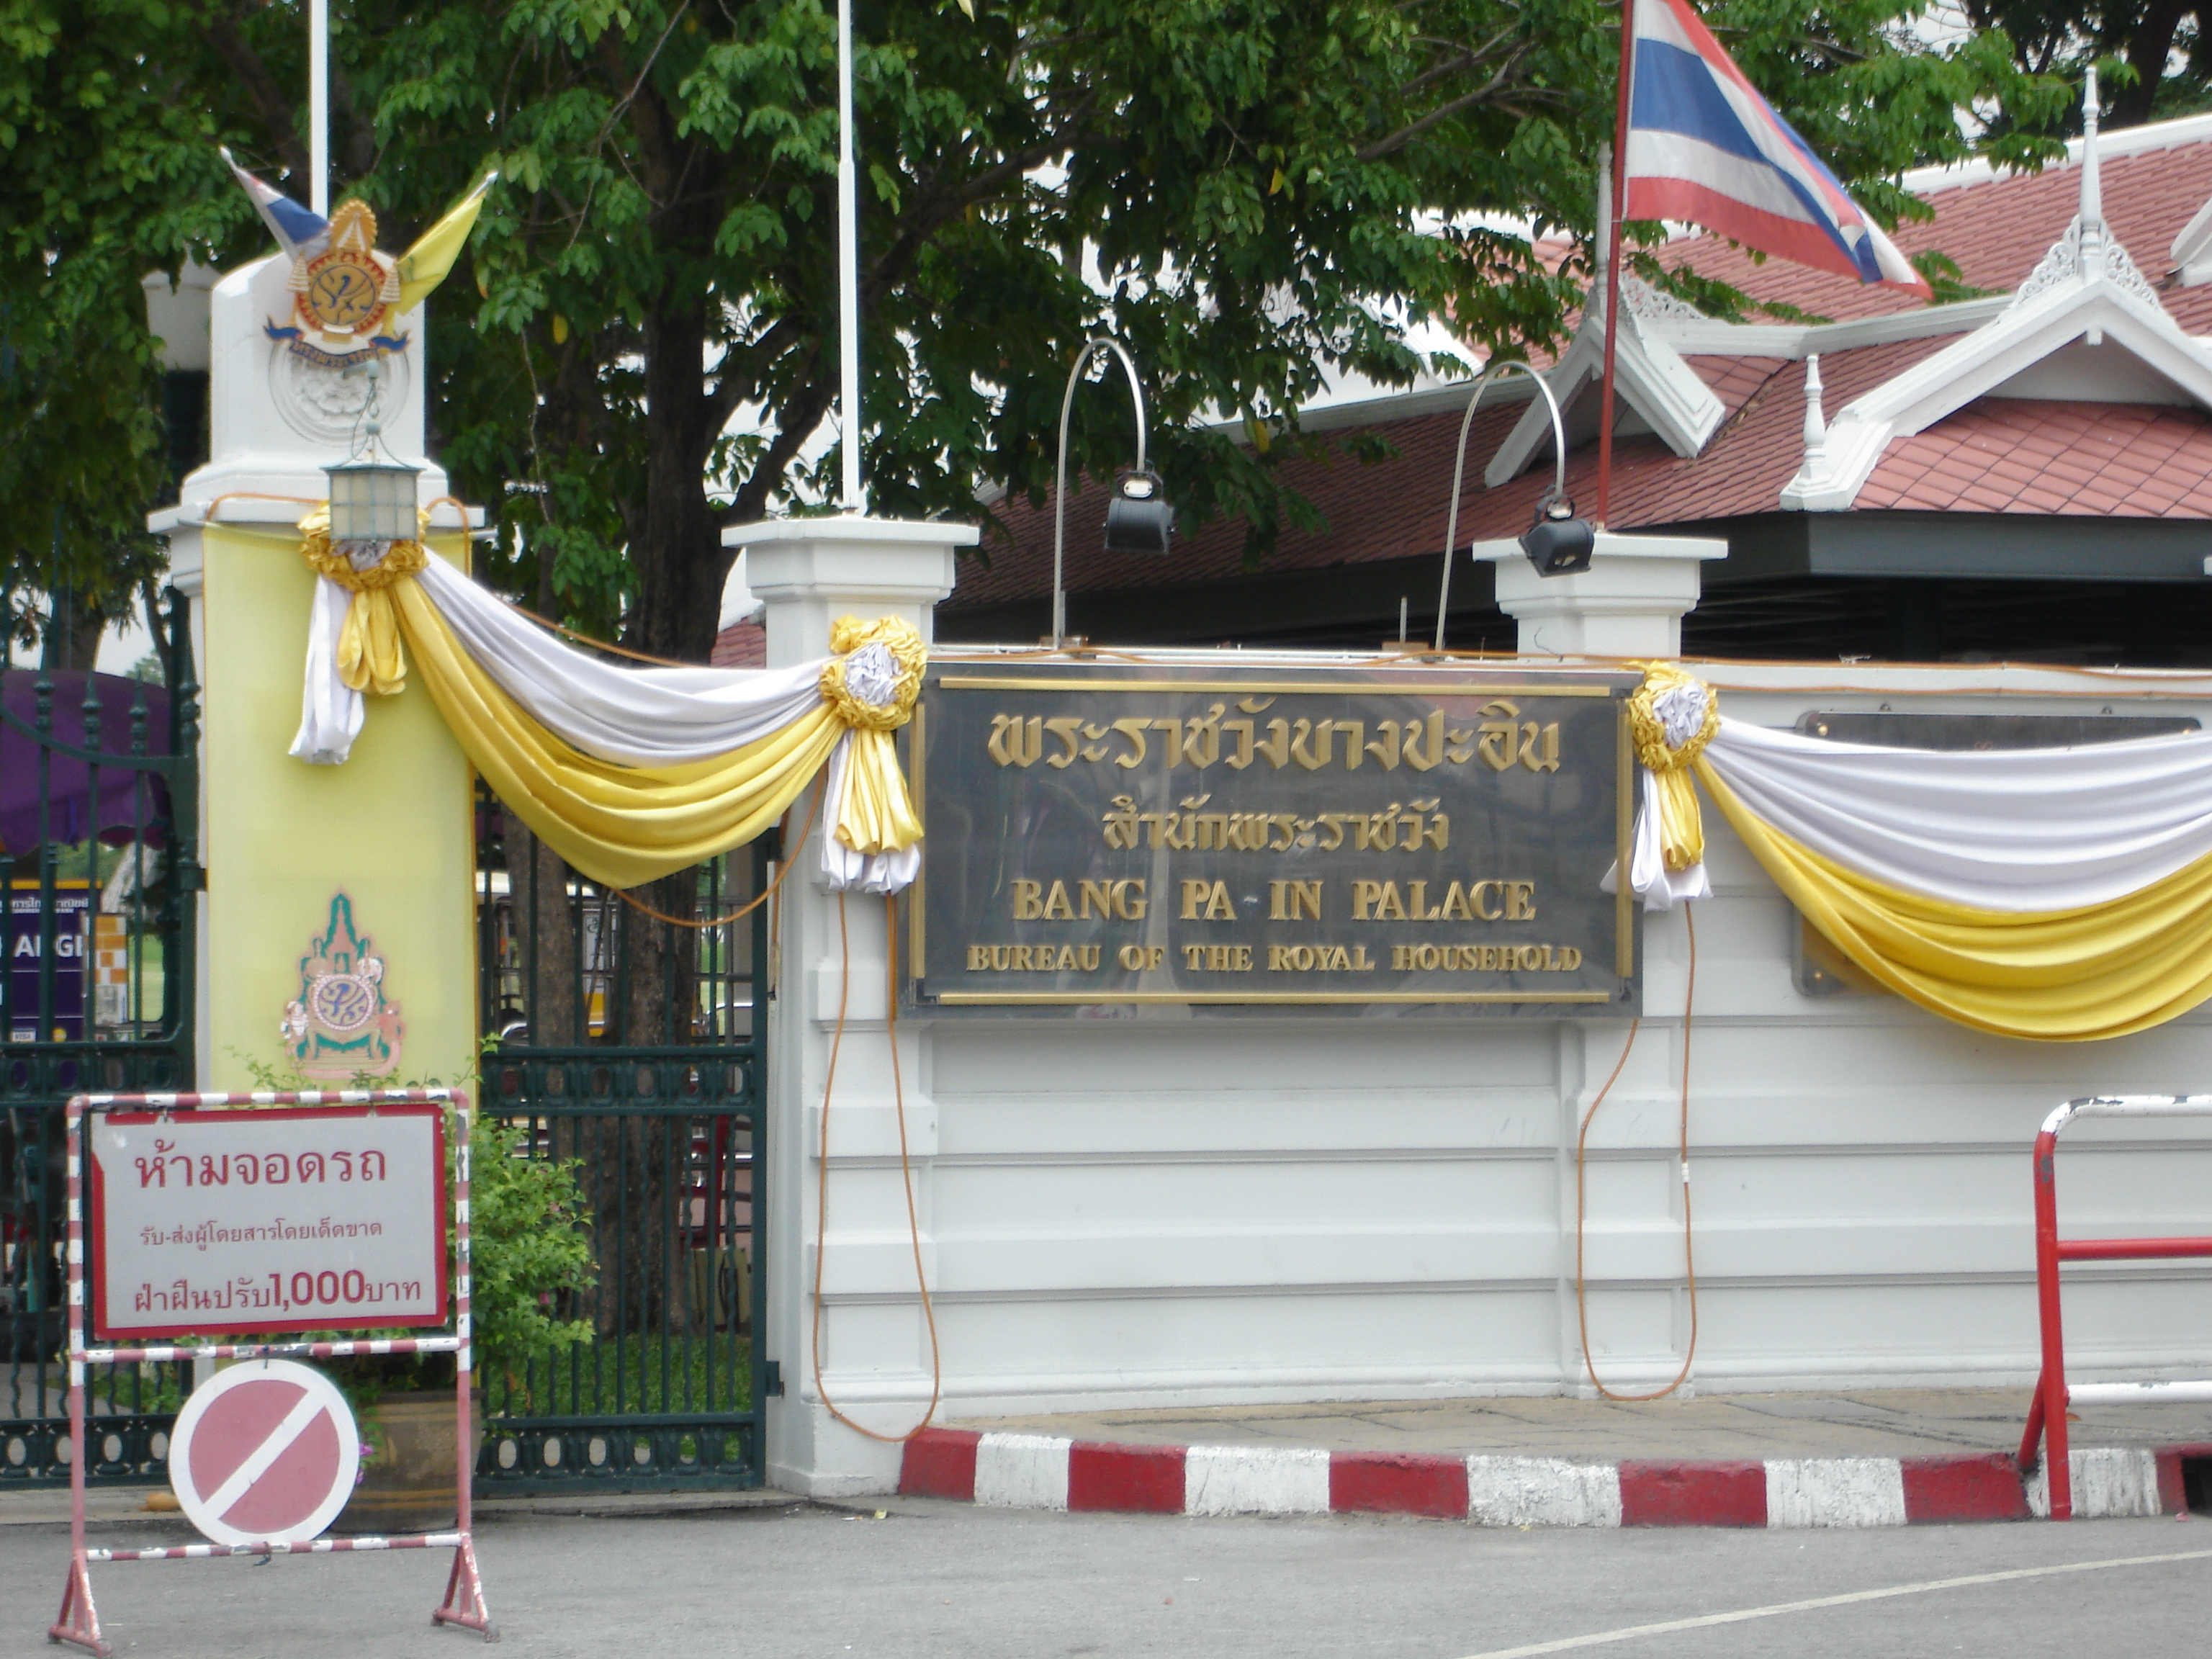 Entrance gate to Bang Pa-In Royal Palace. Photo taken by Mark Jochim on May 16, 2006.